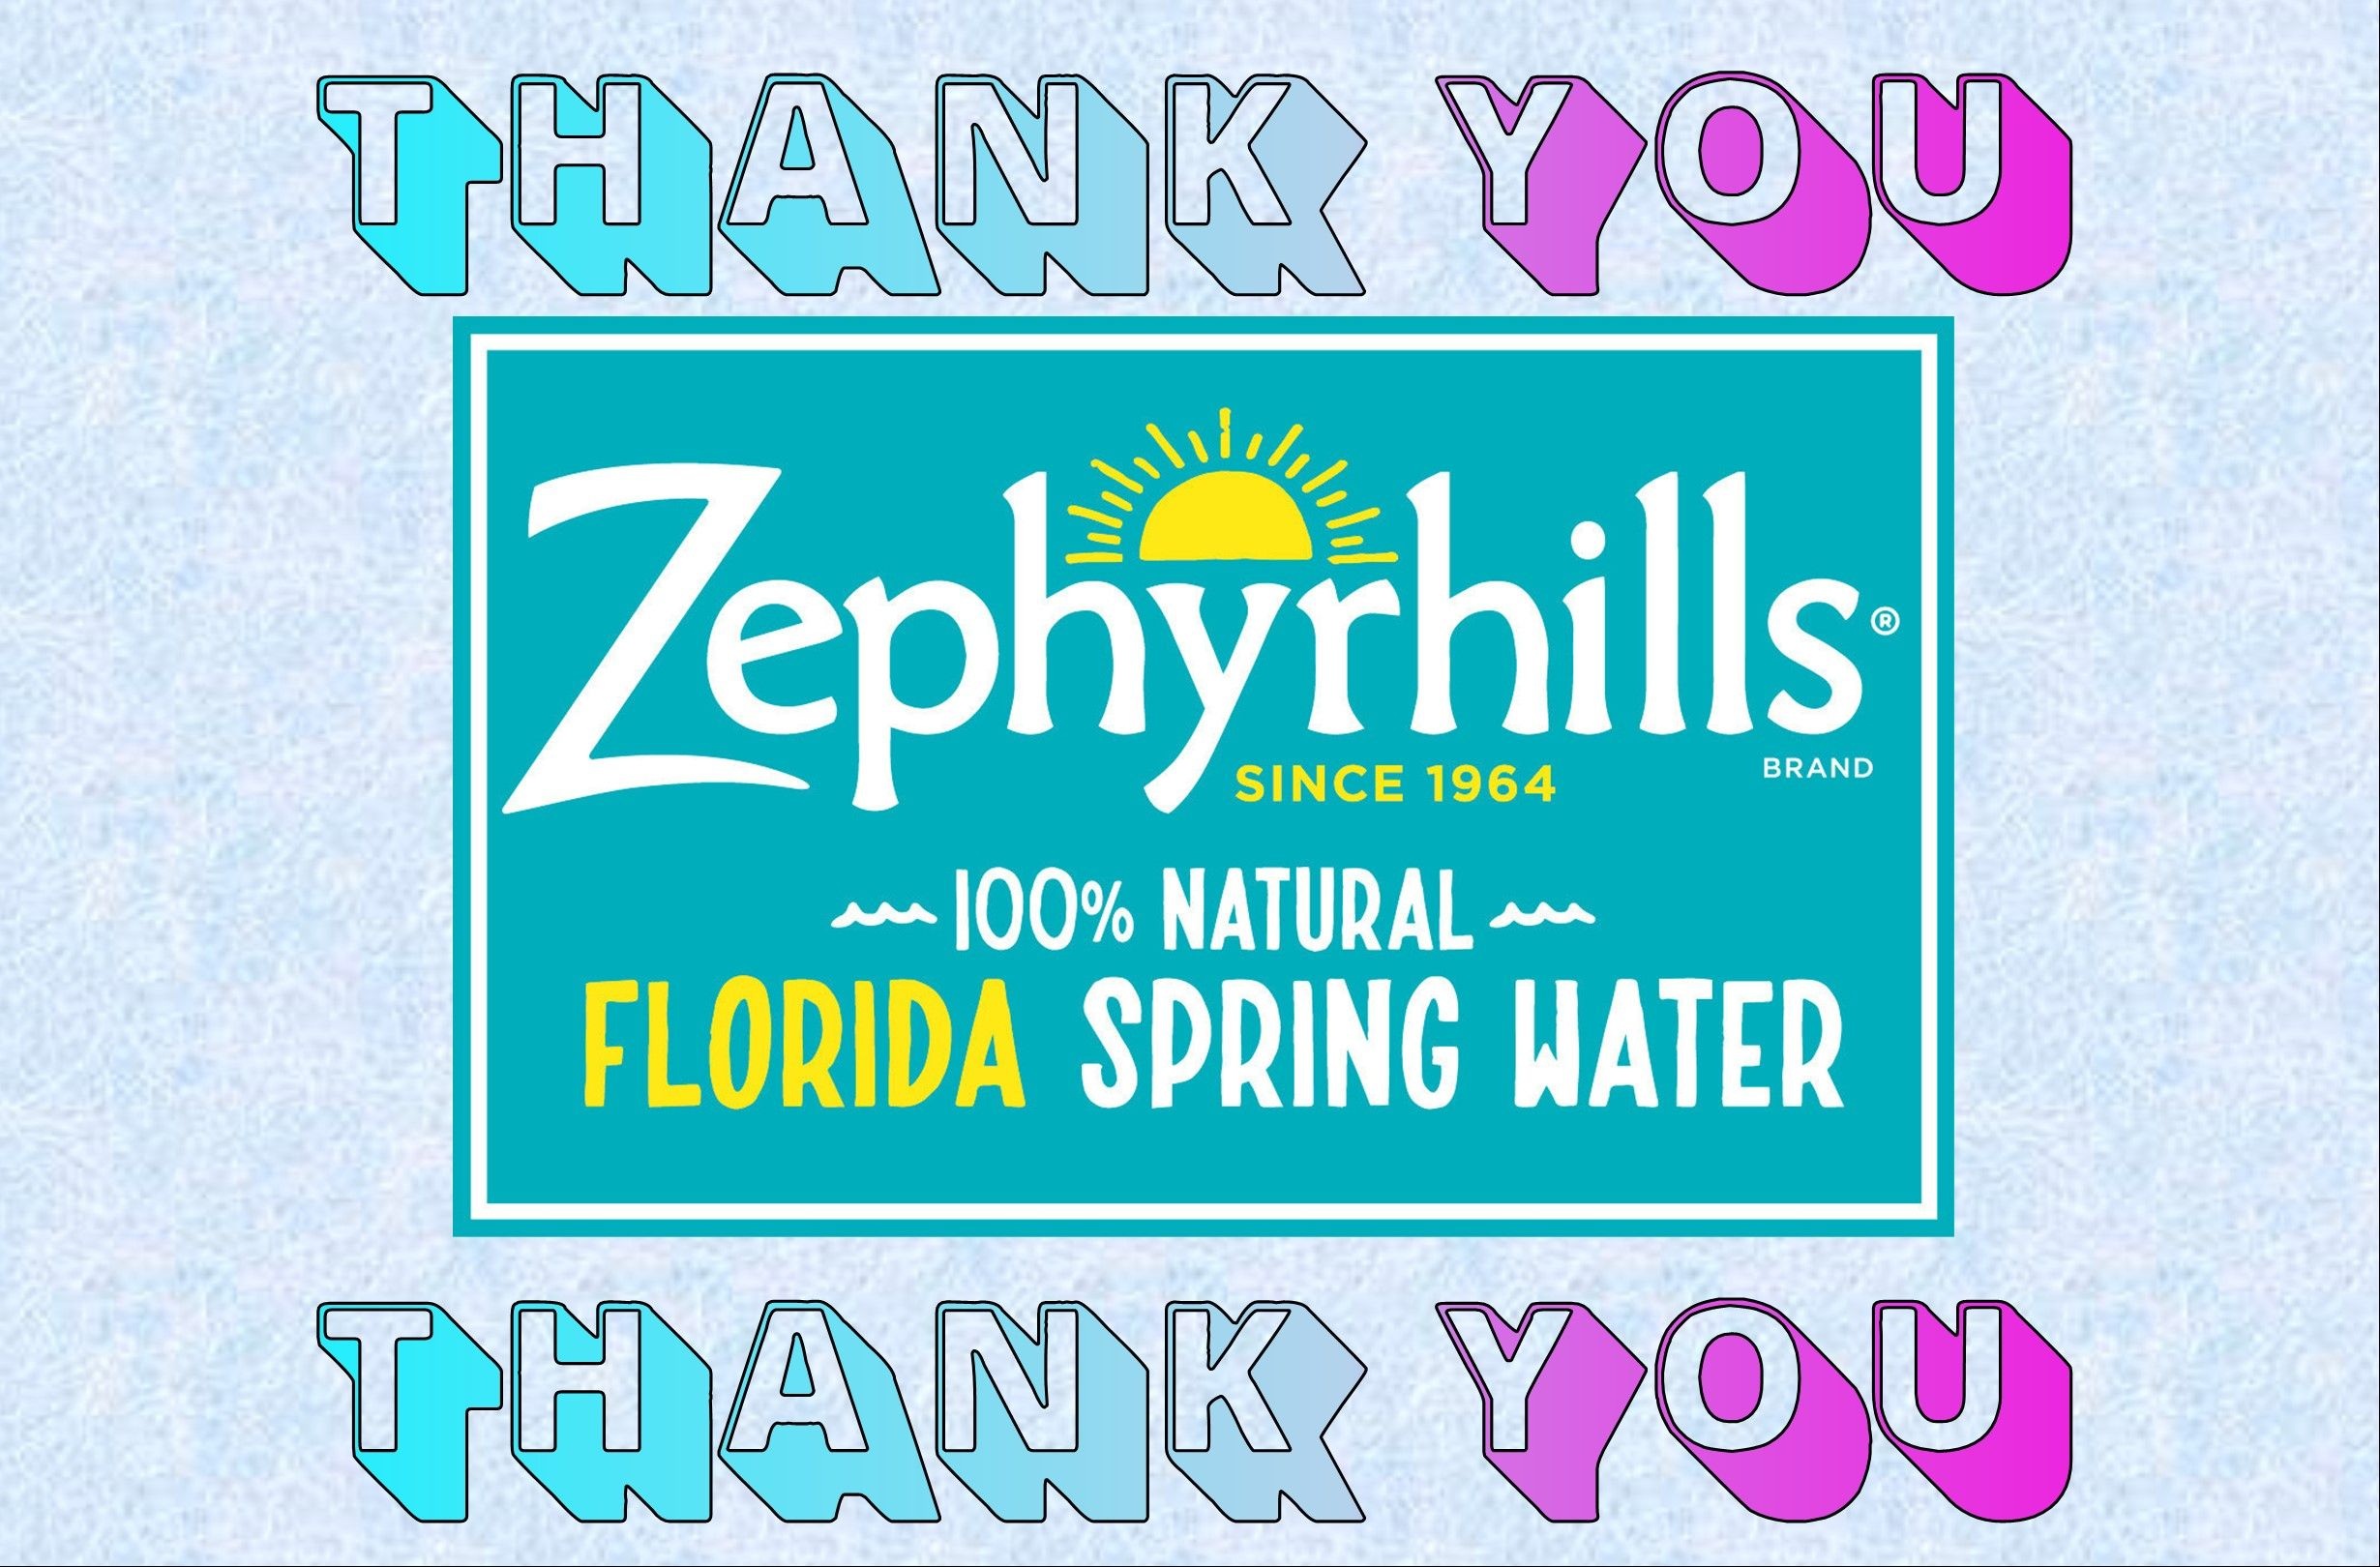 Thank You Zephyrhills!